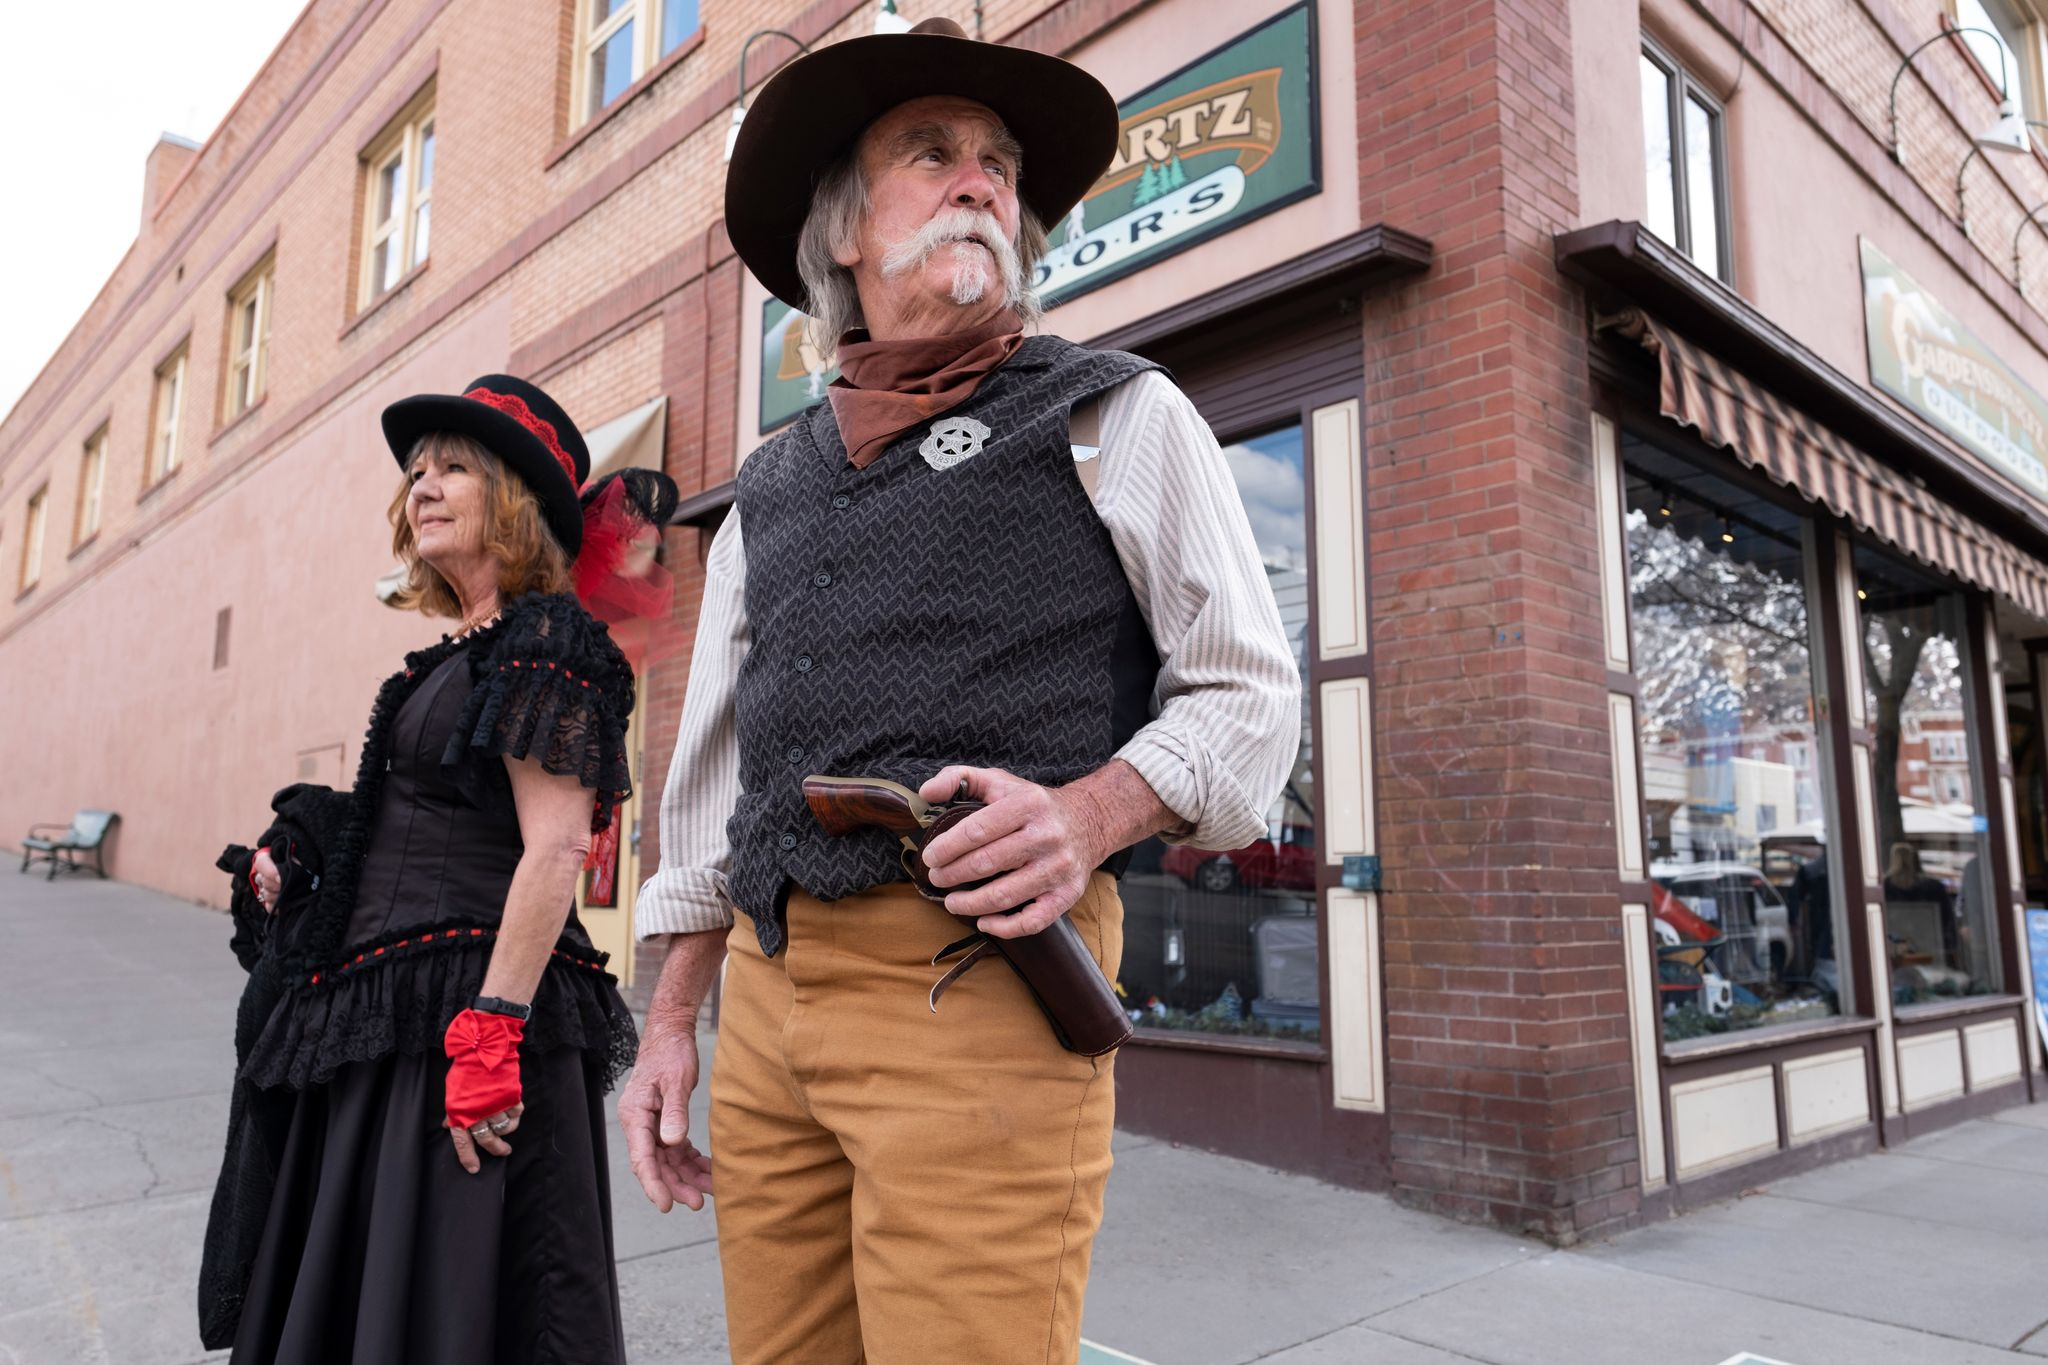 Durango's Covid 'Cowboy' Rounds Up Spring Break Scofflaws, Lines 'Em Up for Shots